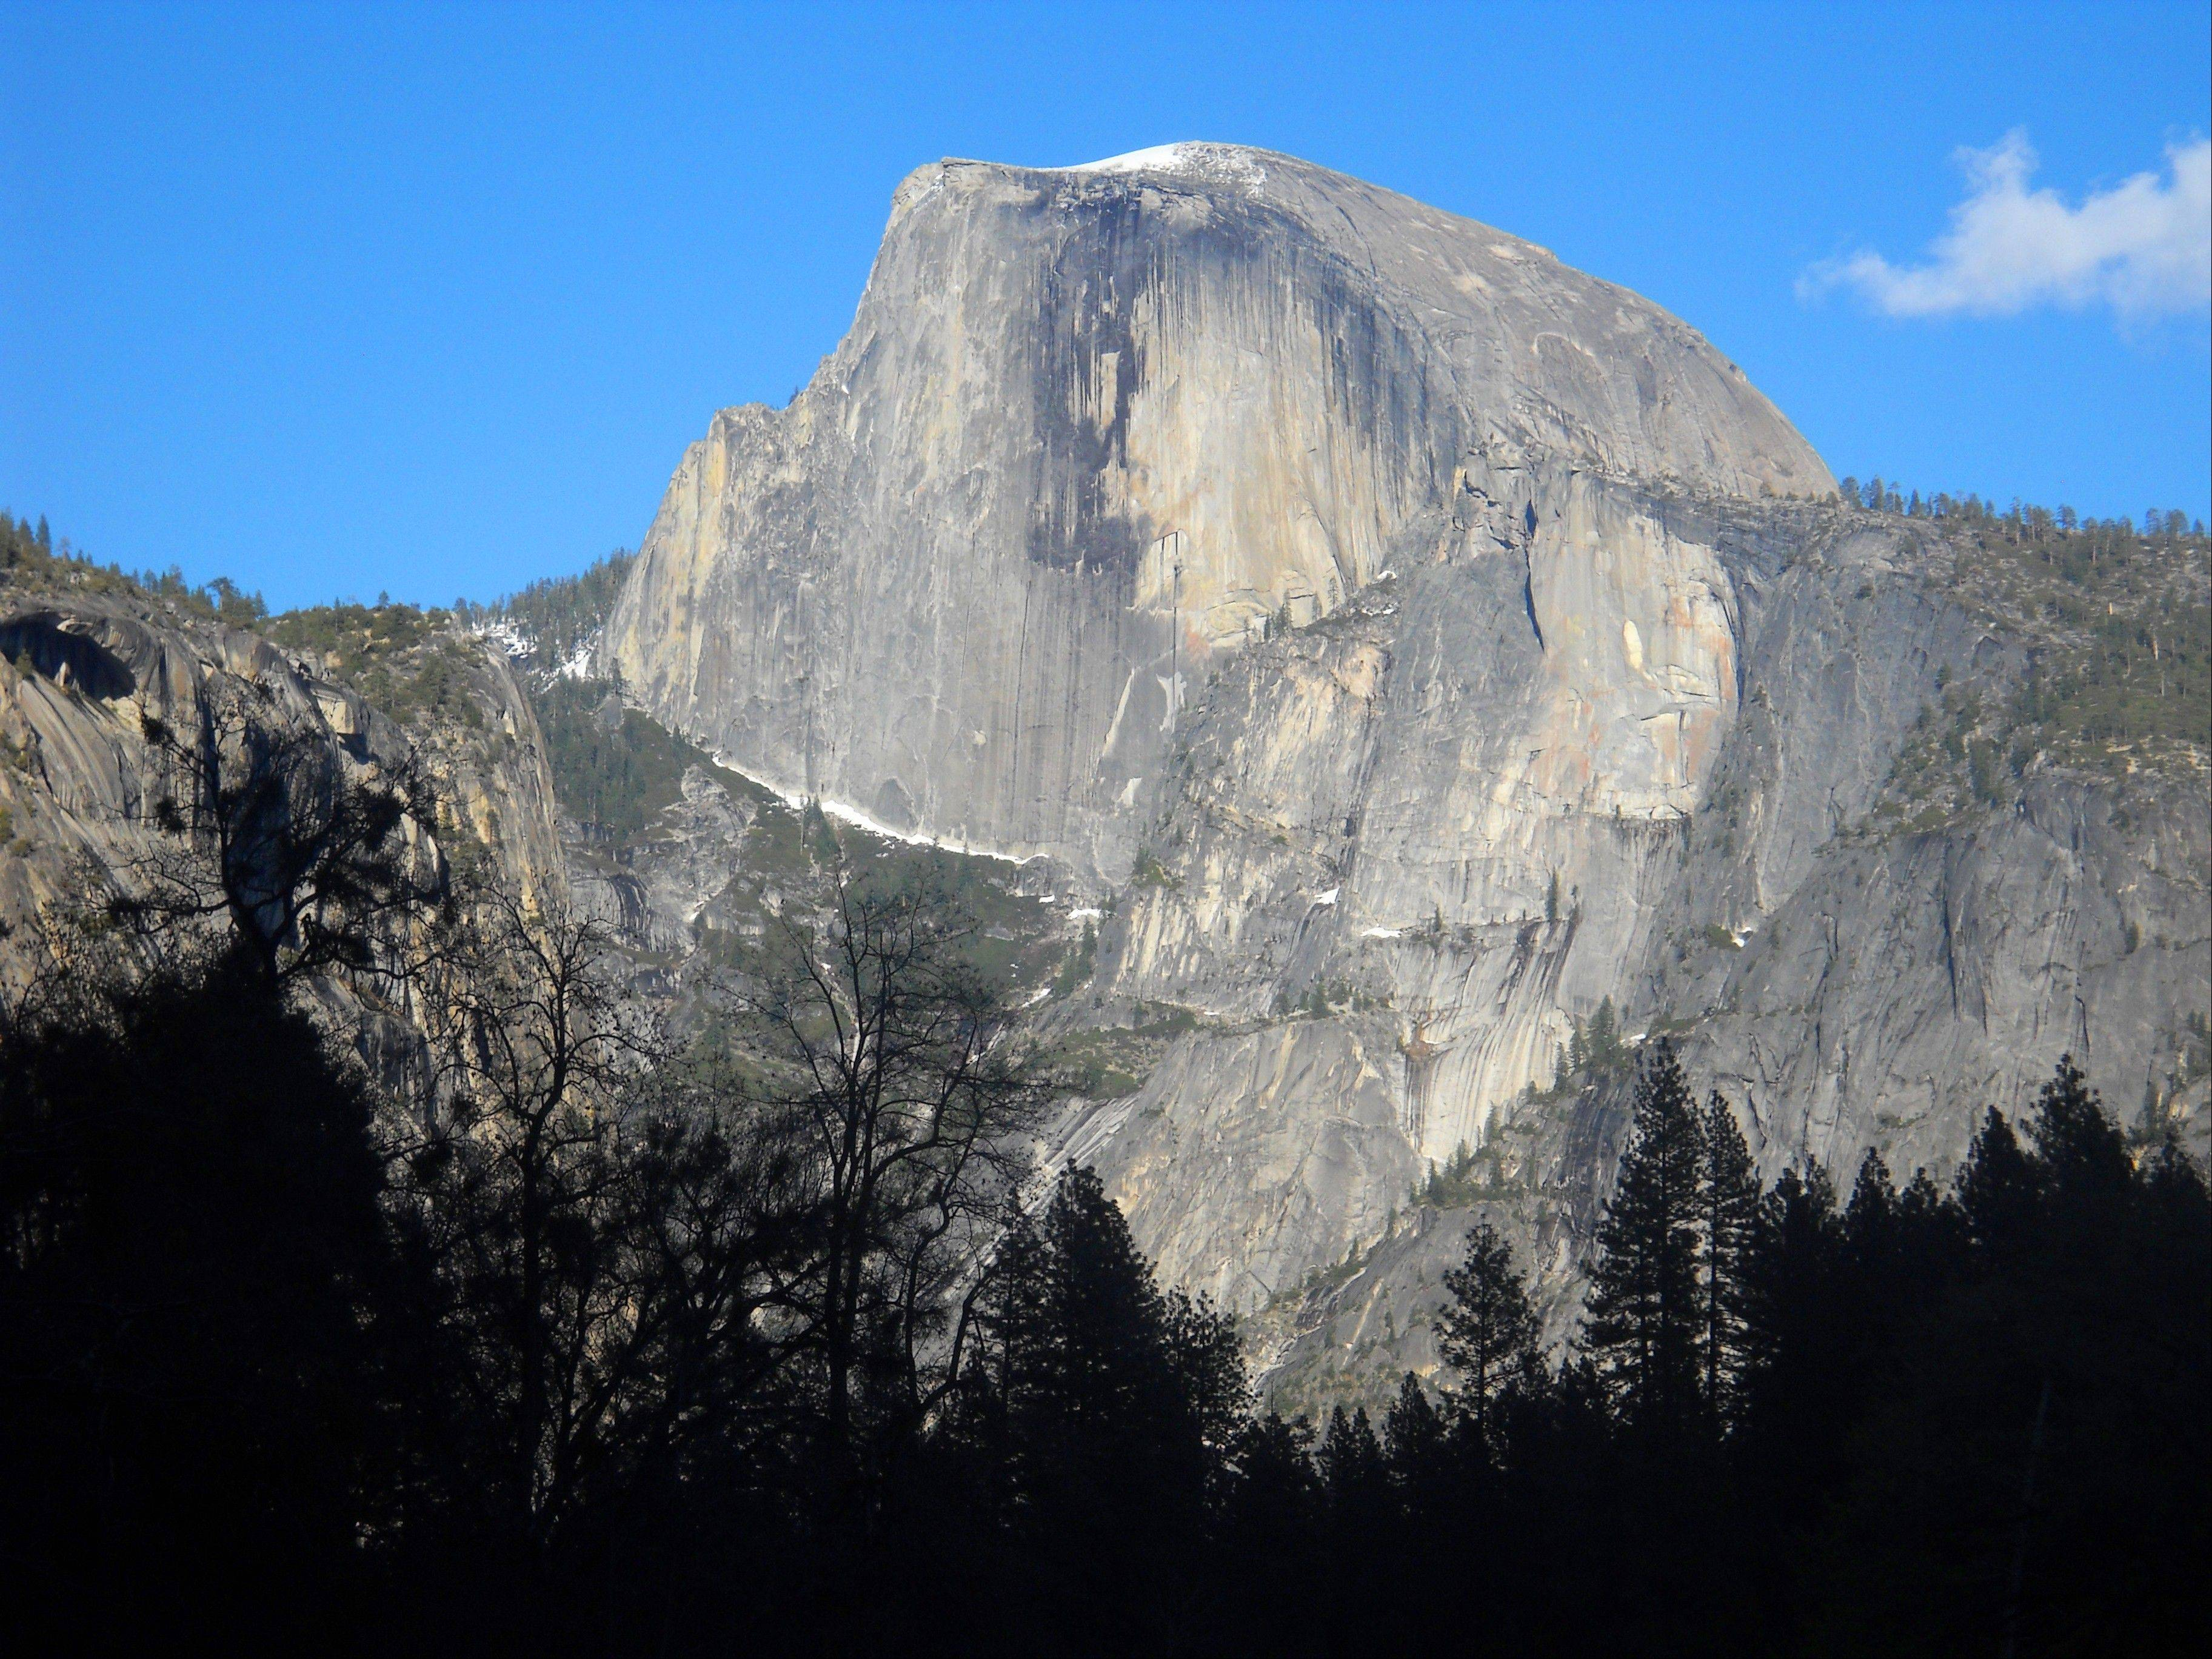 Half Dome is the iconic granite peak in Yosemite National Park.